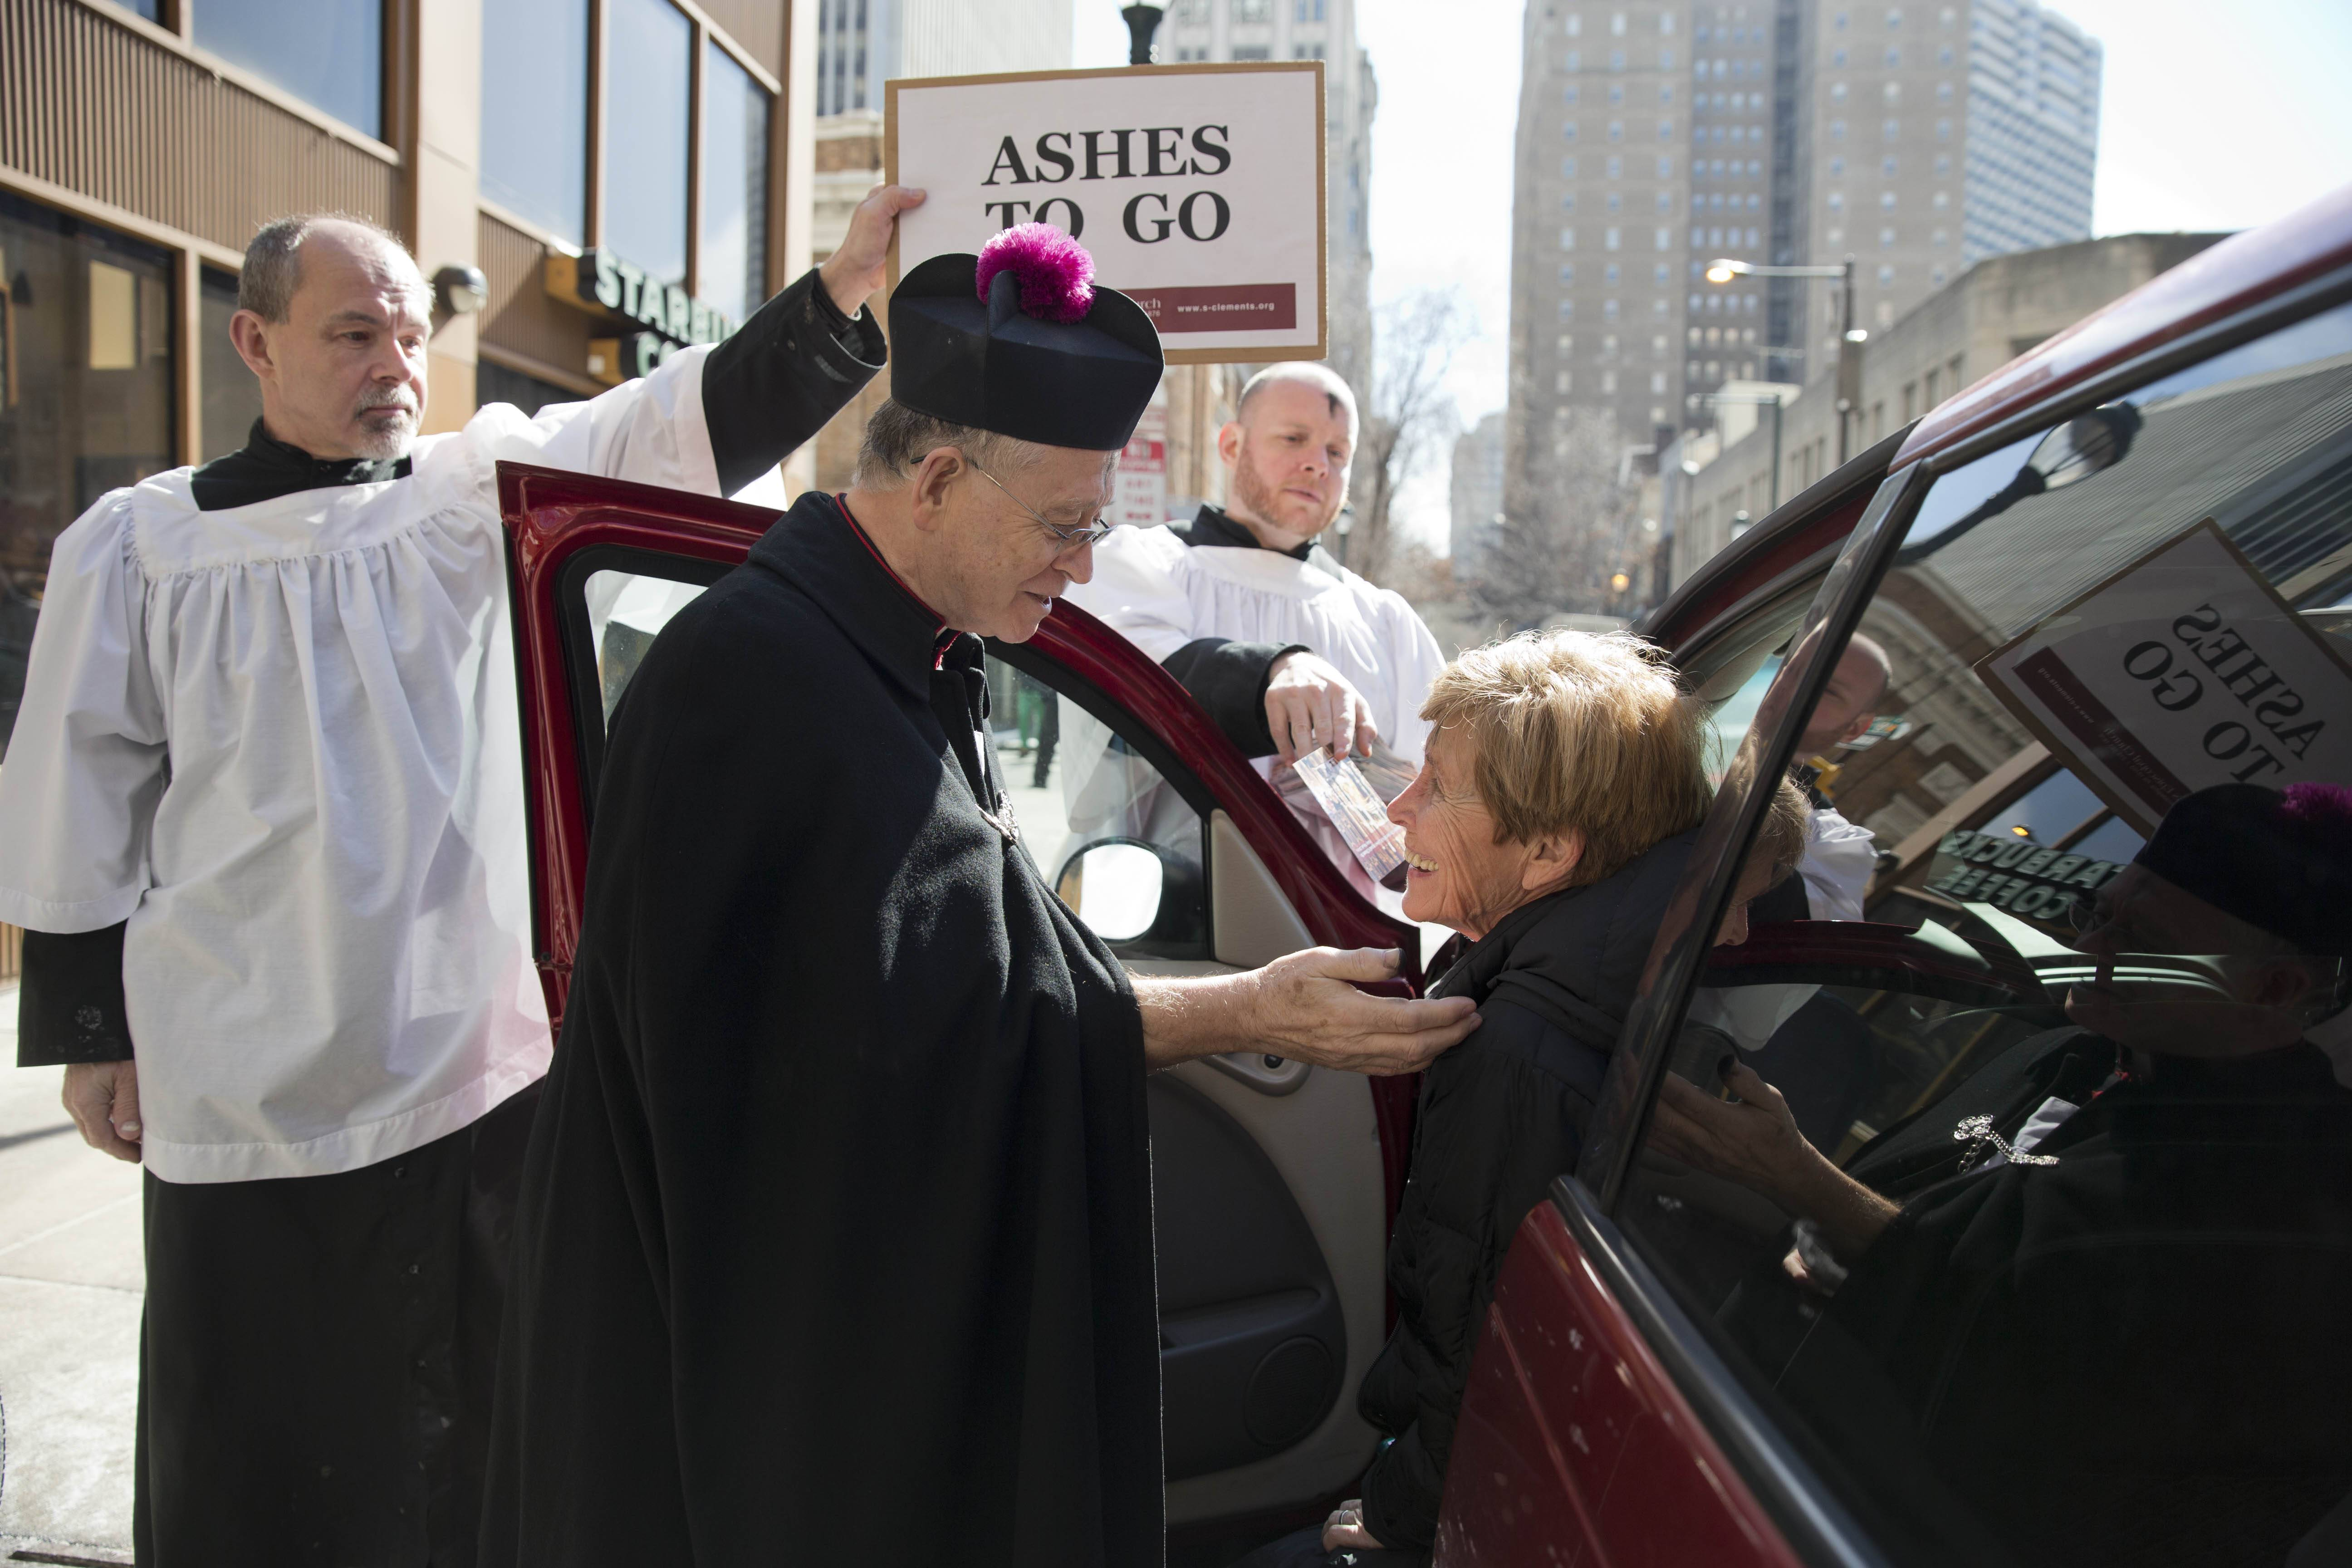 The Rev. Gordon Reid, center, with Saint Clement's Episcopal Church, accompanied by Curt Mangel, left, and Daniel Craig, center right, places ash on a worshiper's forehead on Ash Wednesday at the corner of Chestnut and 19th Streets in Philadelphia.